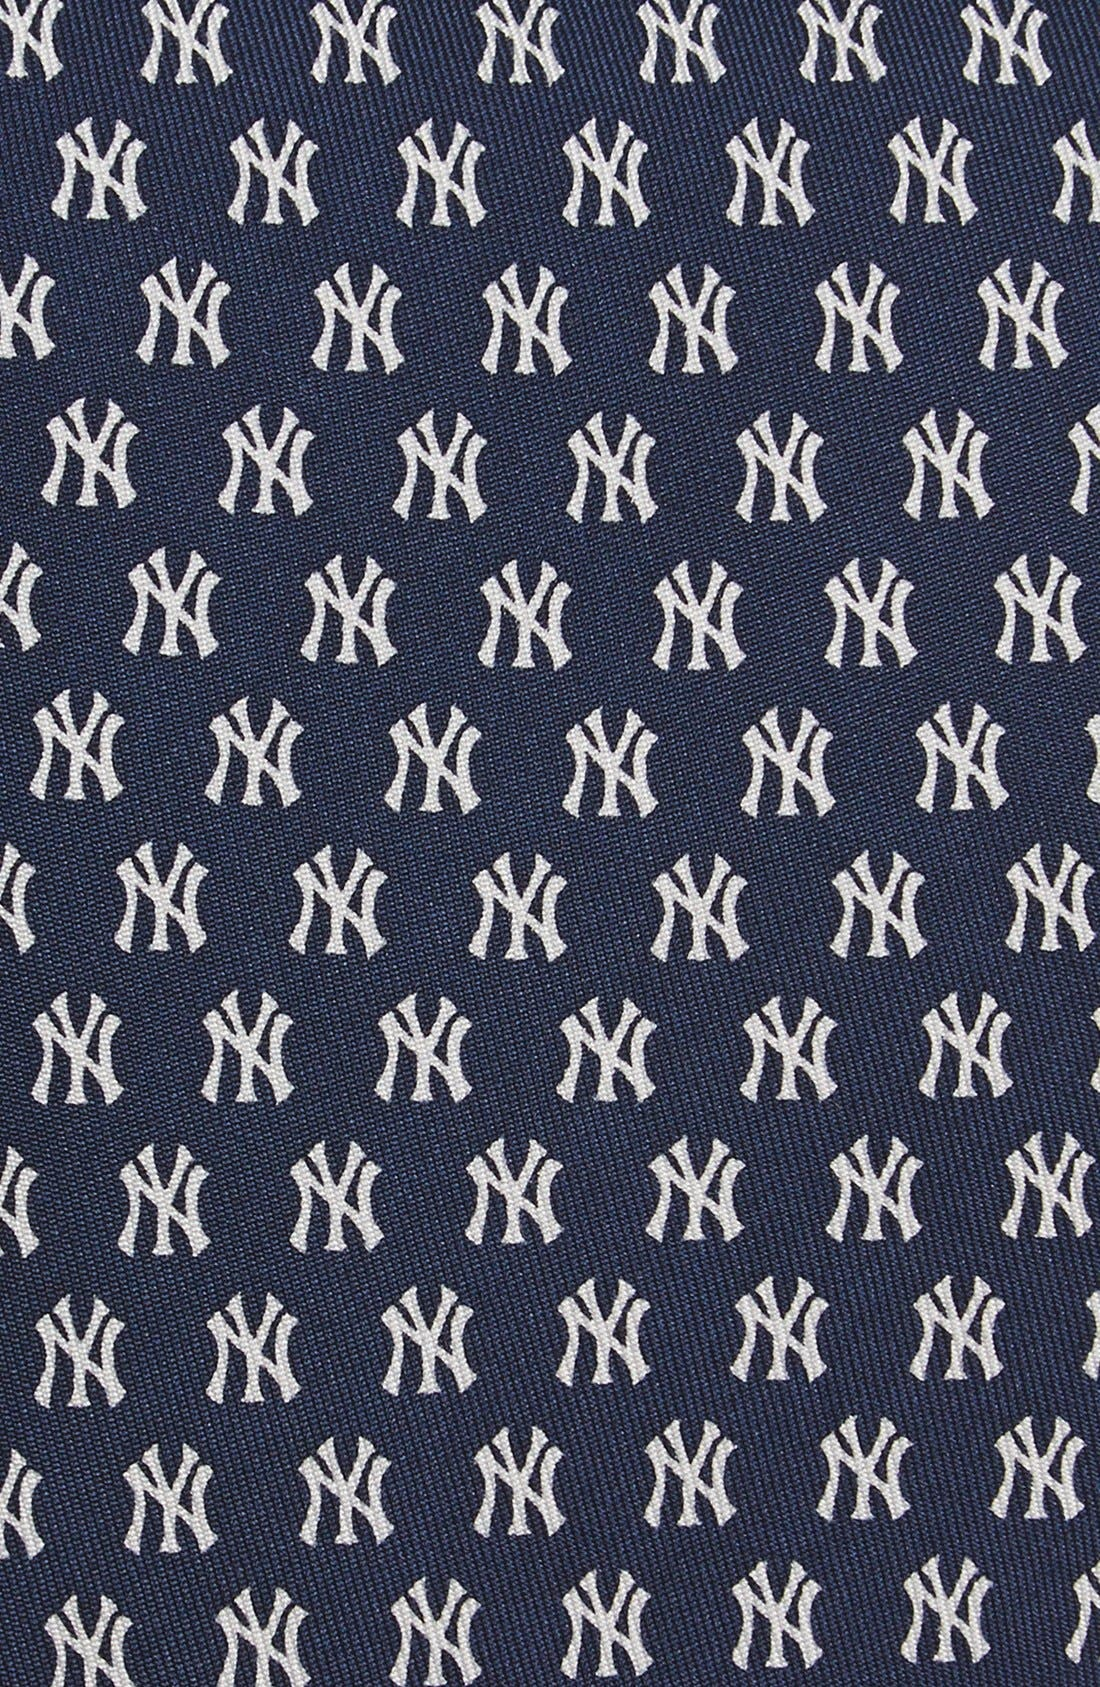 'New York Yankees' Silk Tie,                             Alternate thumbnail 2, color,                             Navy